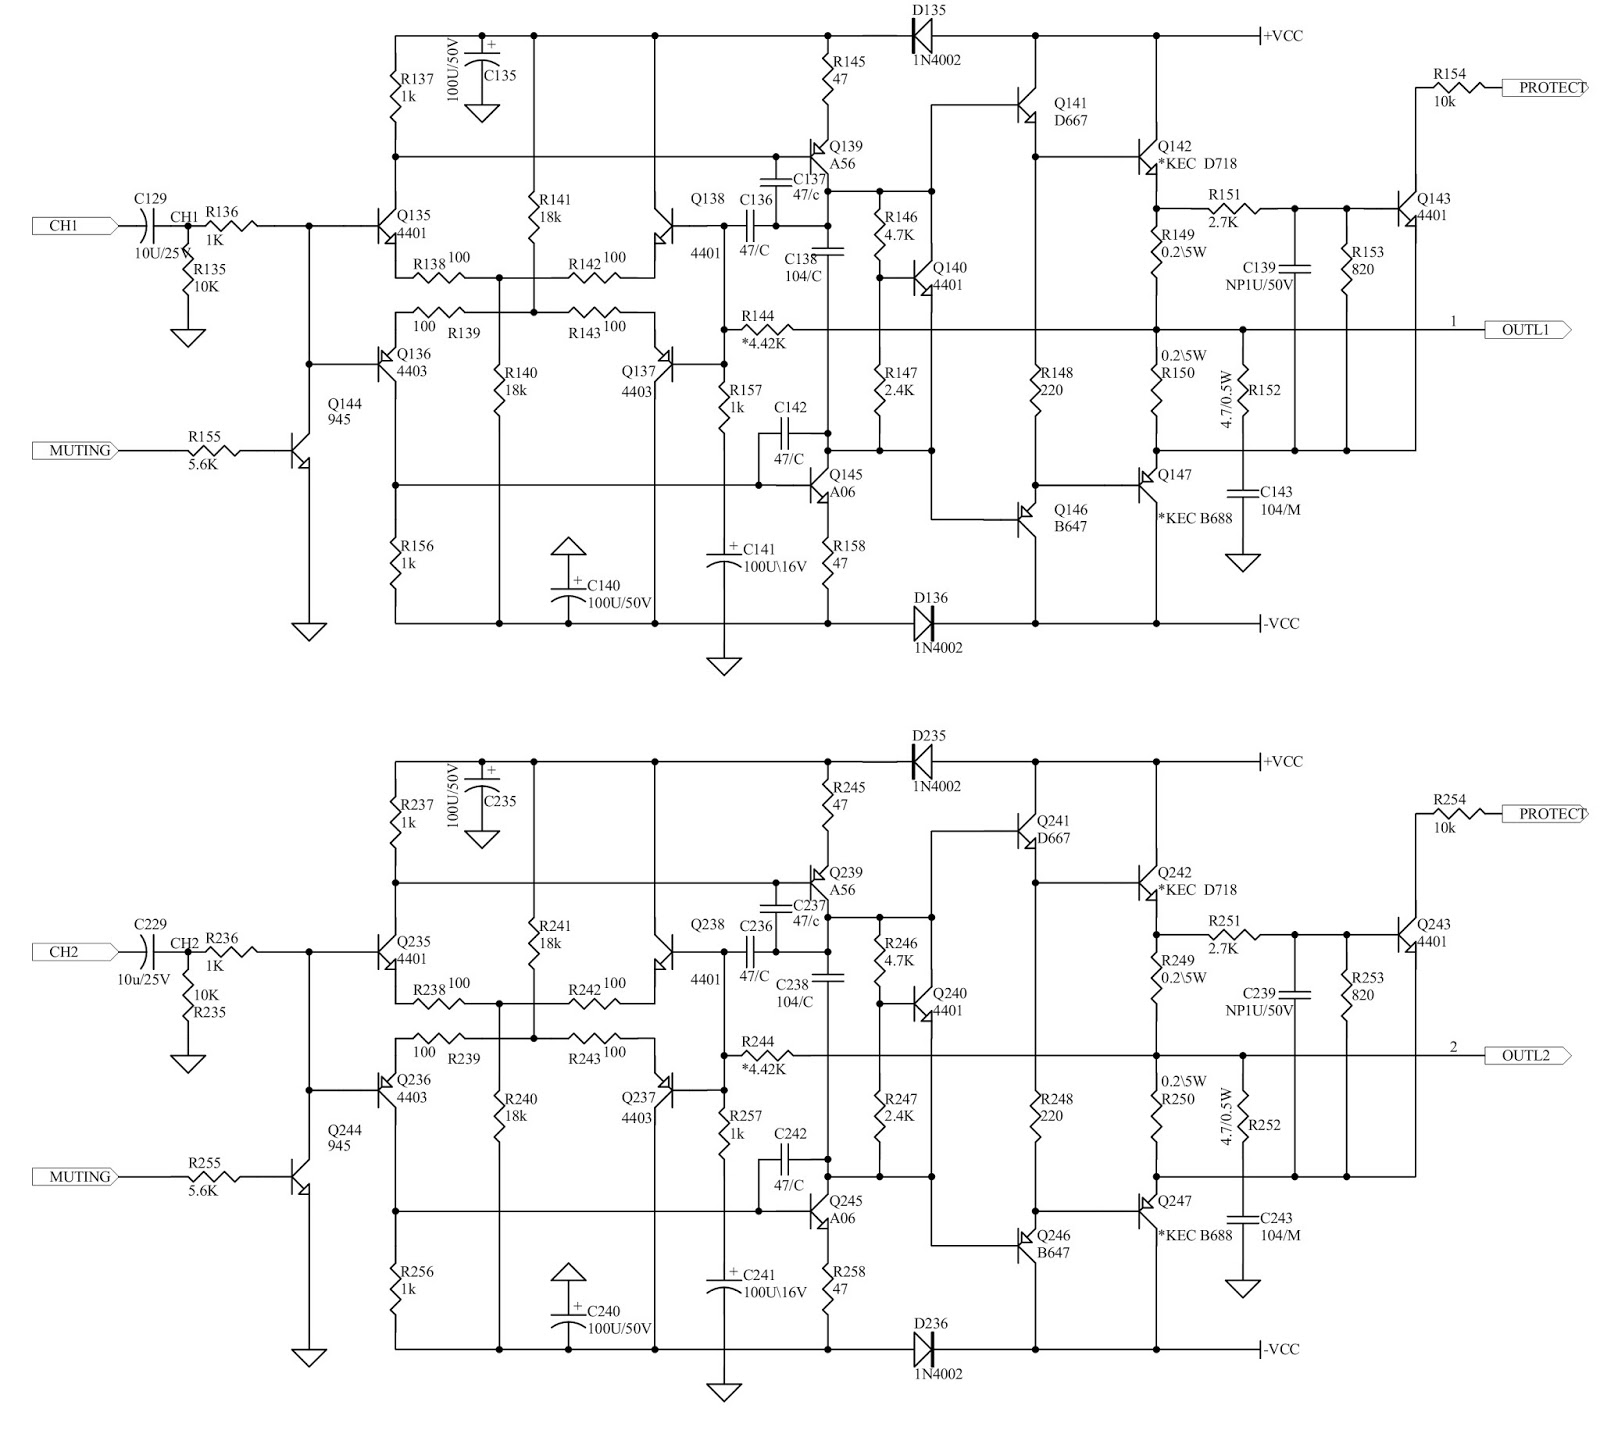 jbl radio wiring diagram for toyota tacoma w jbl l100t3 wiring diagram jbl ma6004 - marine series - schematic diagram - semiconductor lead details - 4-channel ...